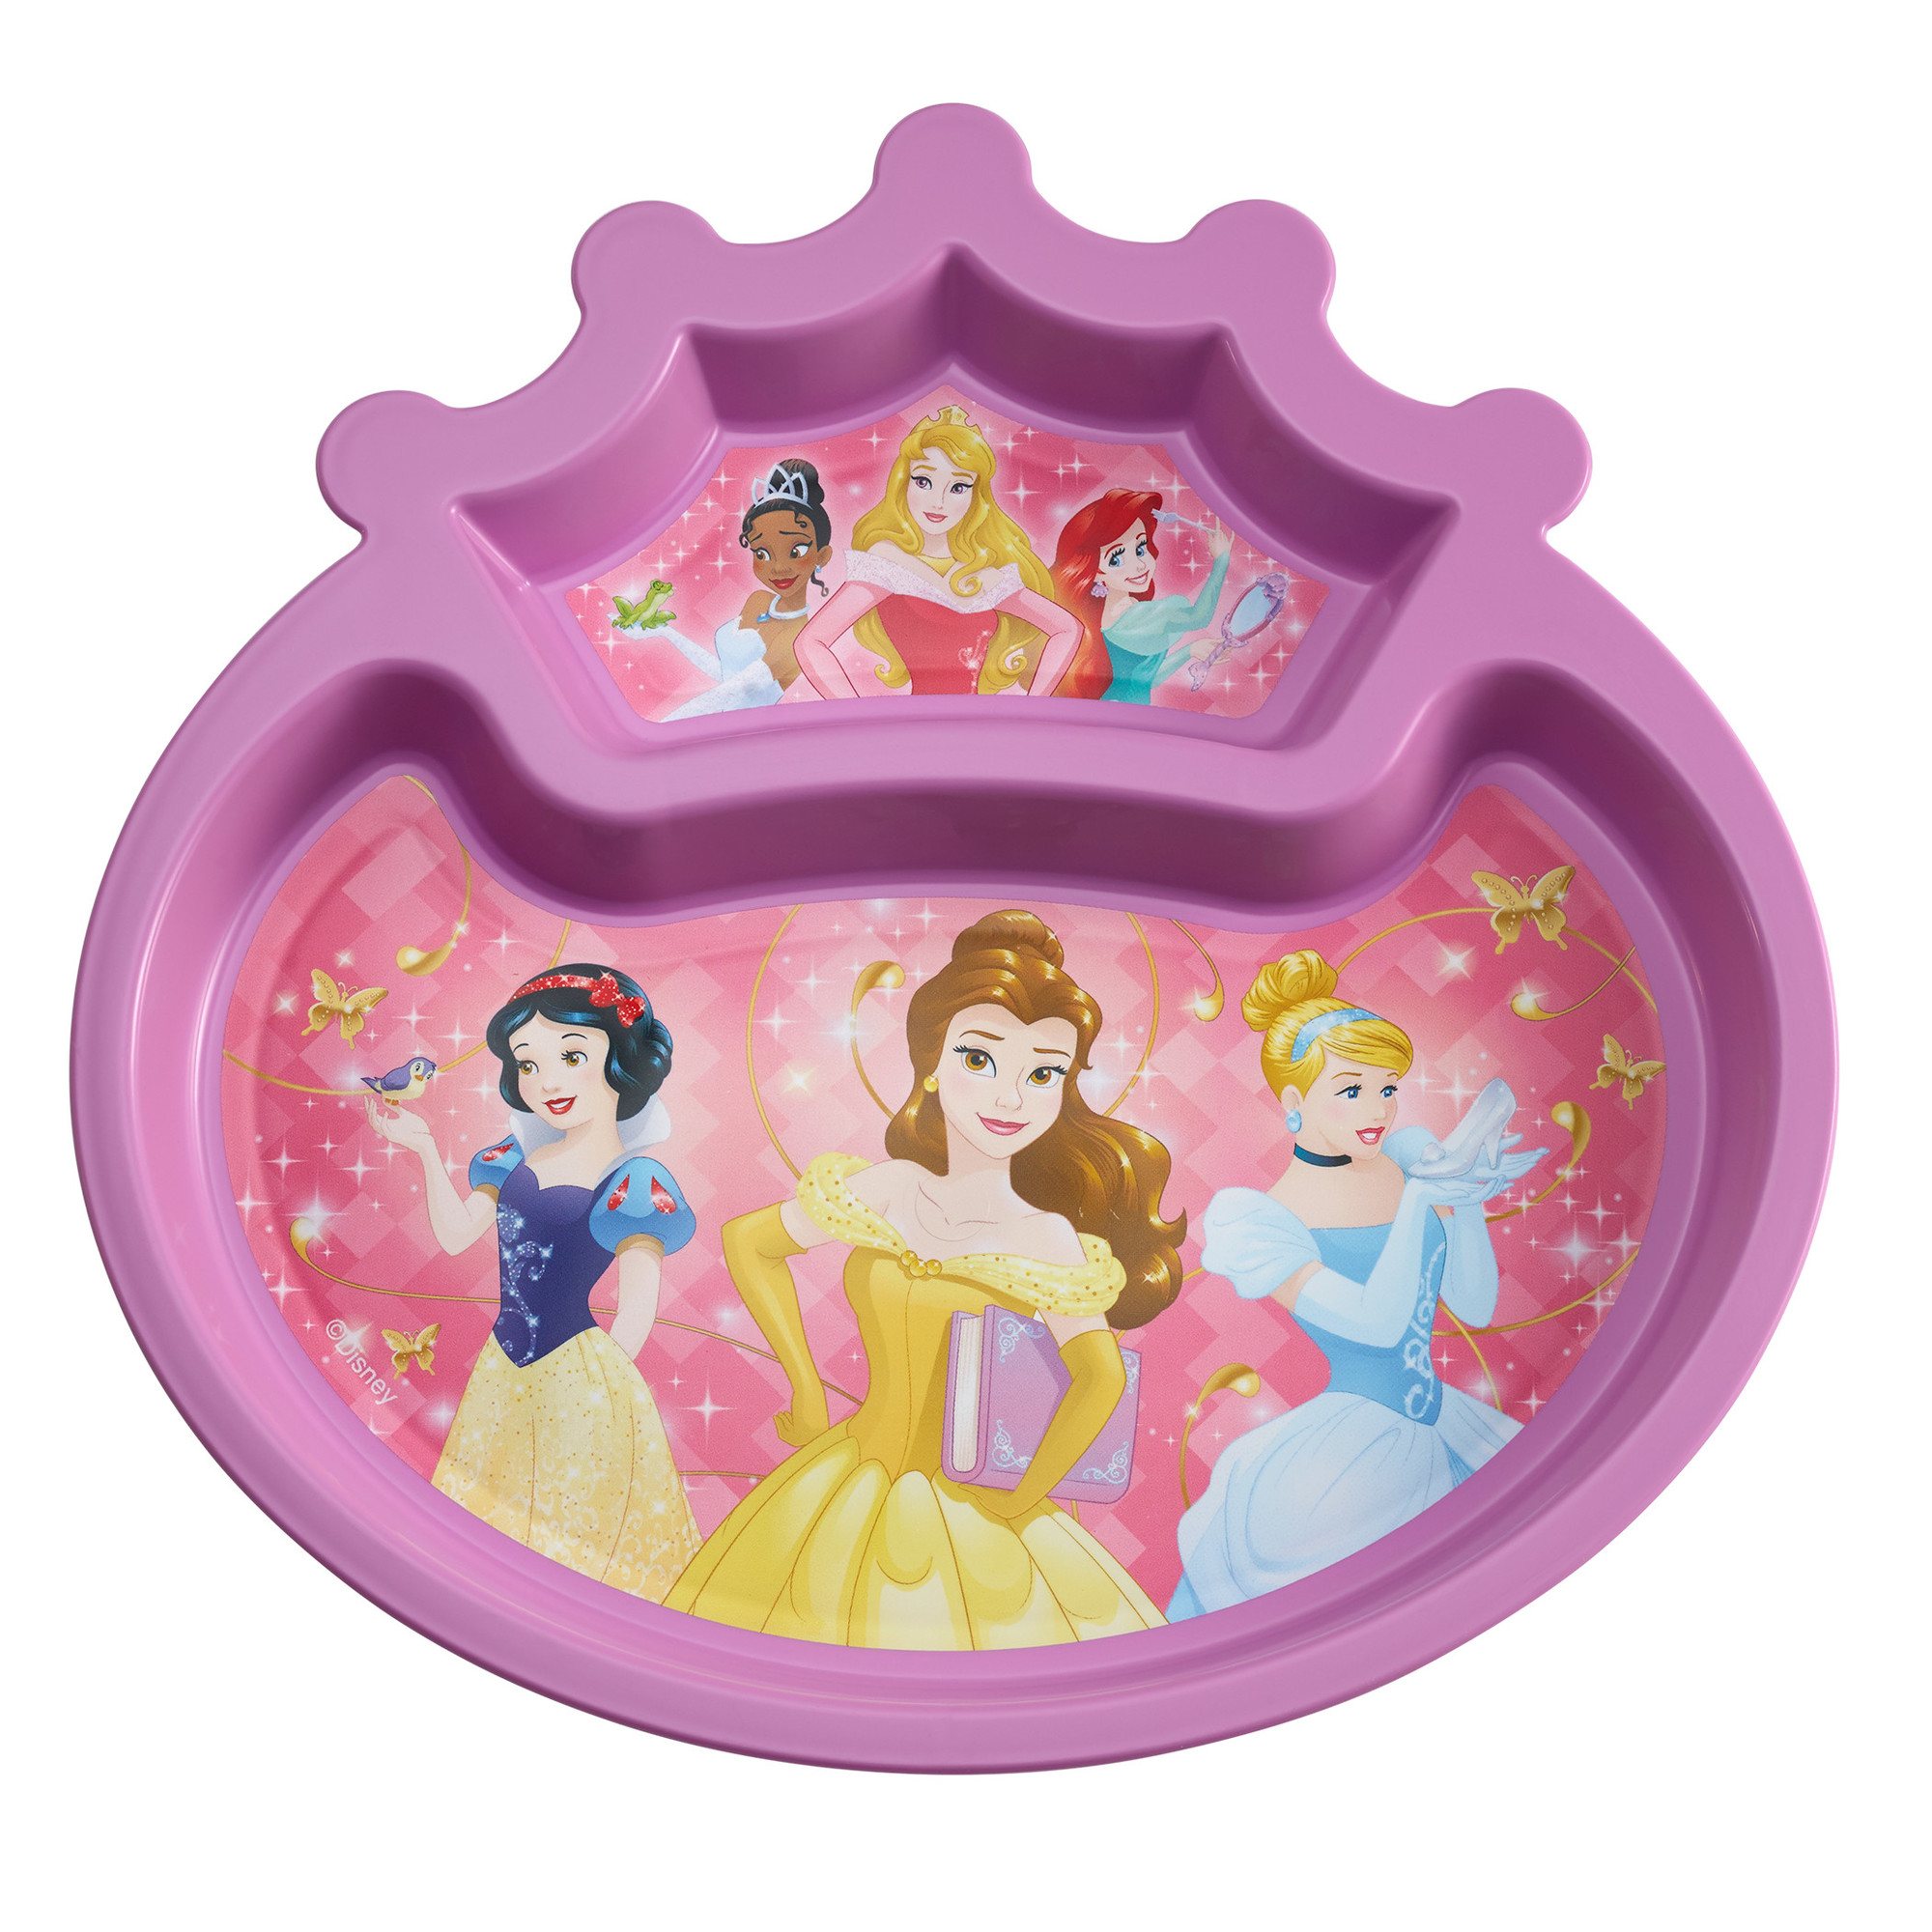 The First Years Disney Princess Sectioned Plate, BPA-Free